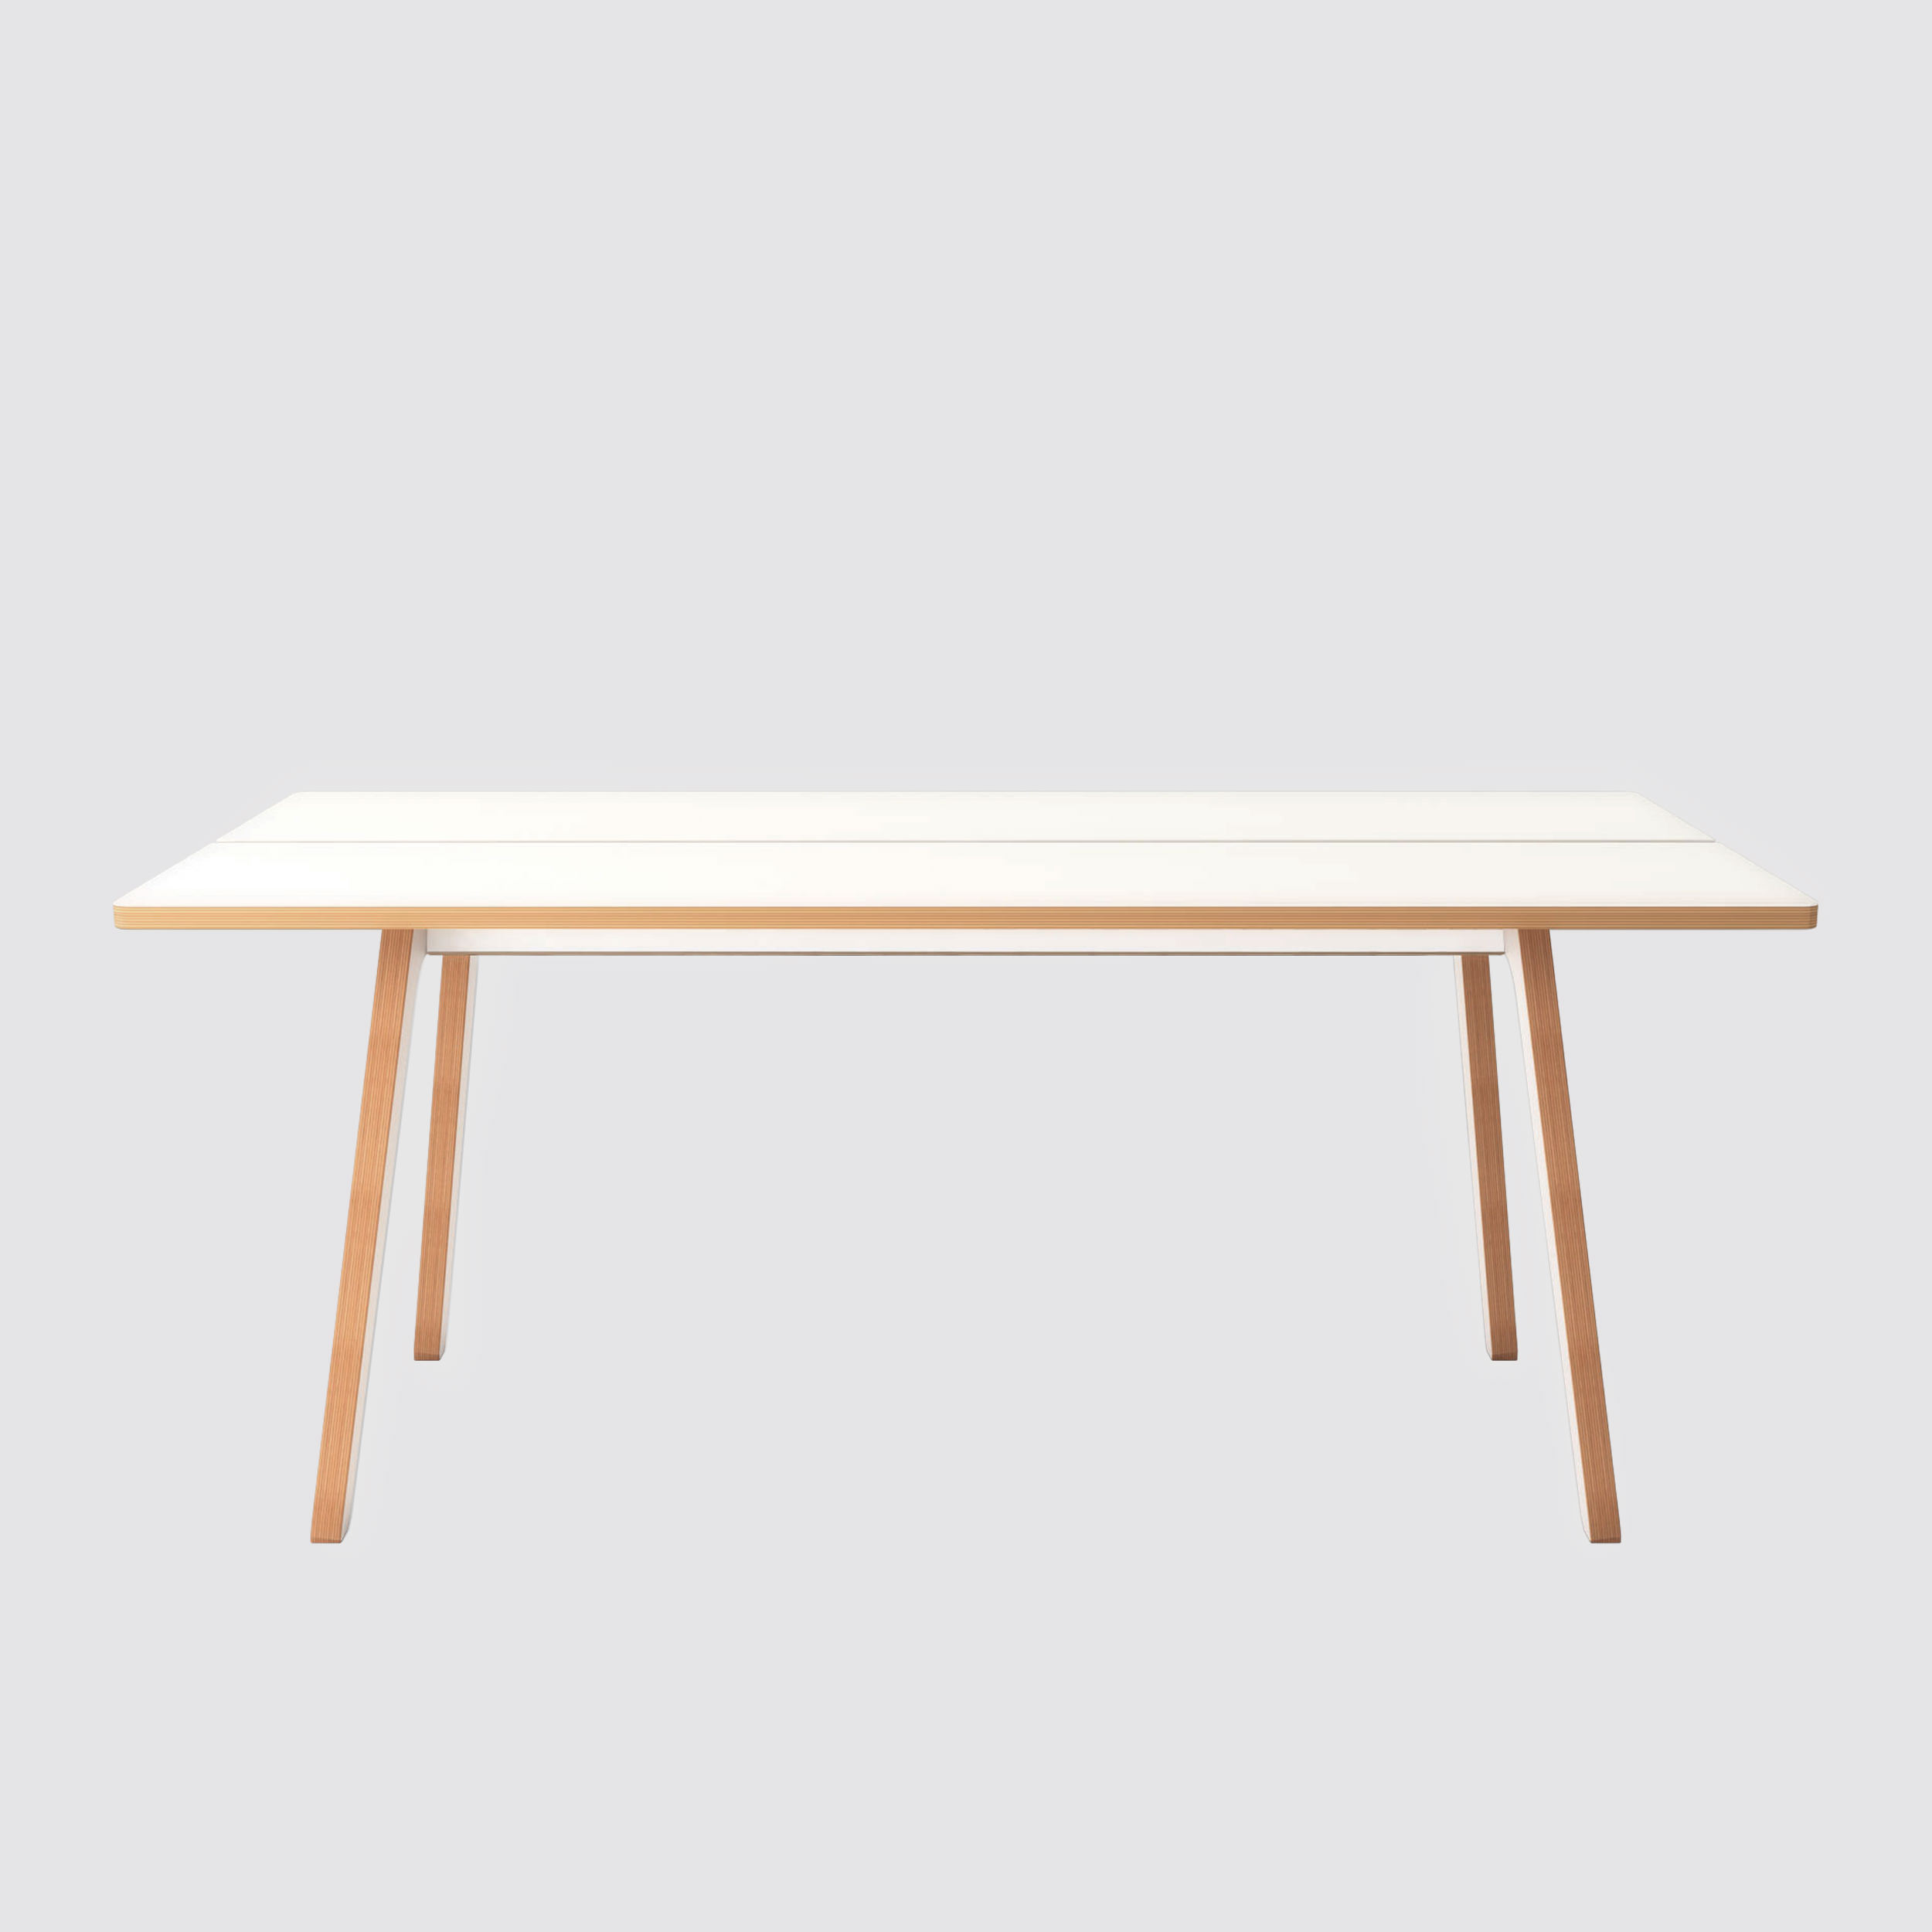 Modern wood table k s dining table british design for Modern wooden dining table designs